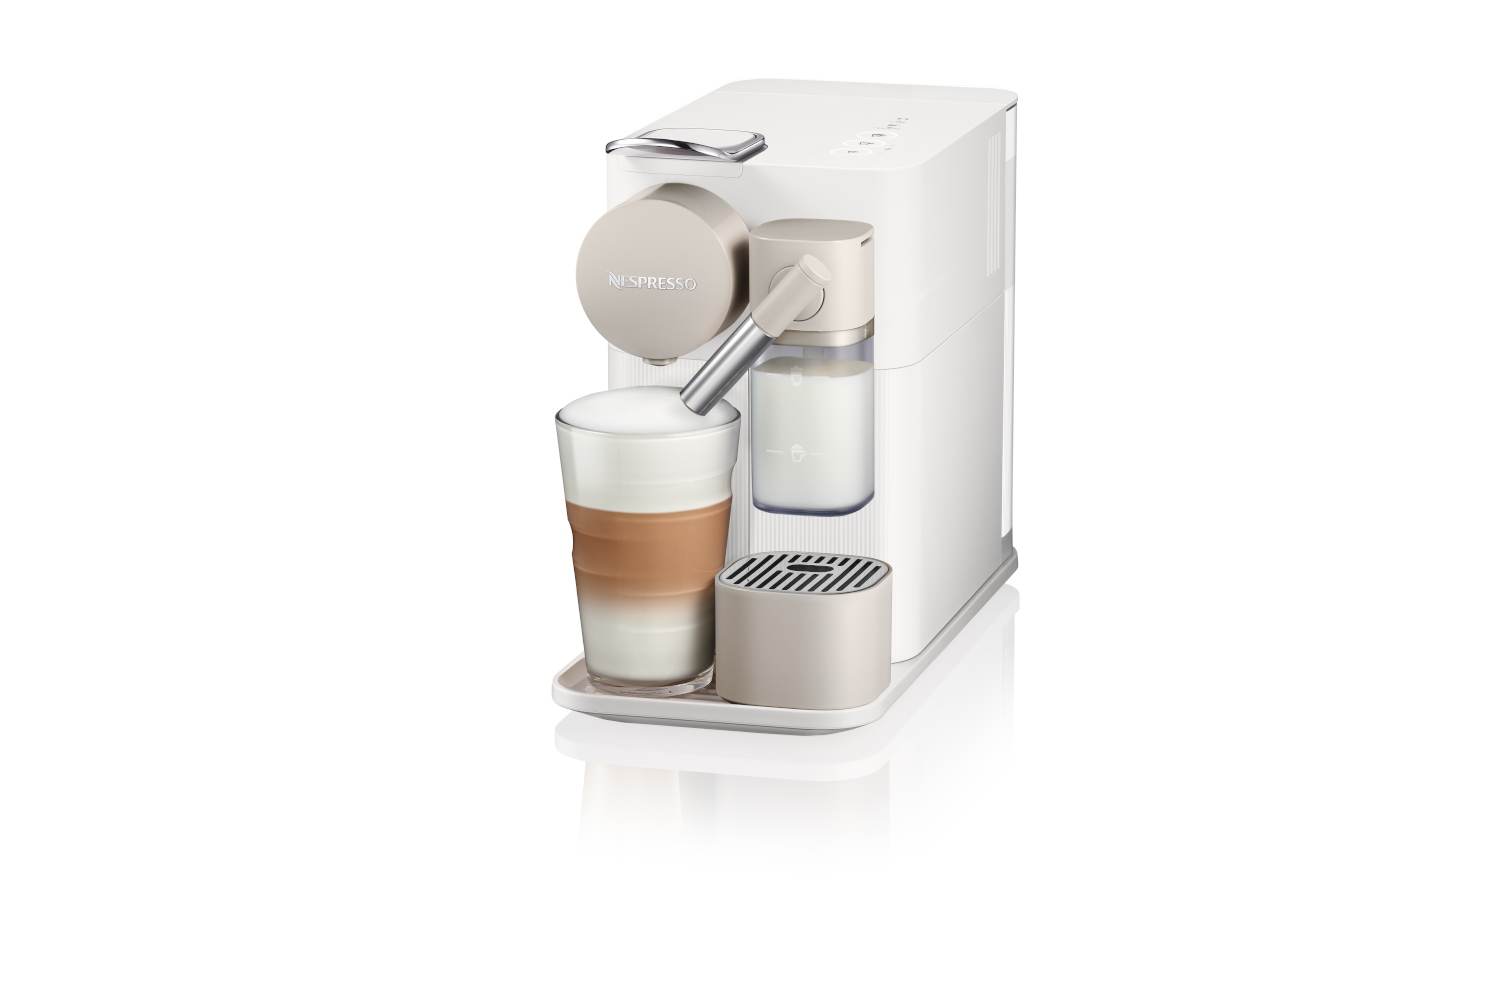 Nespresso Lattissima One by De'Longhi - Silky White